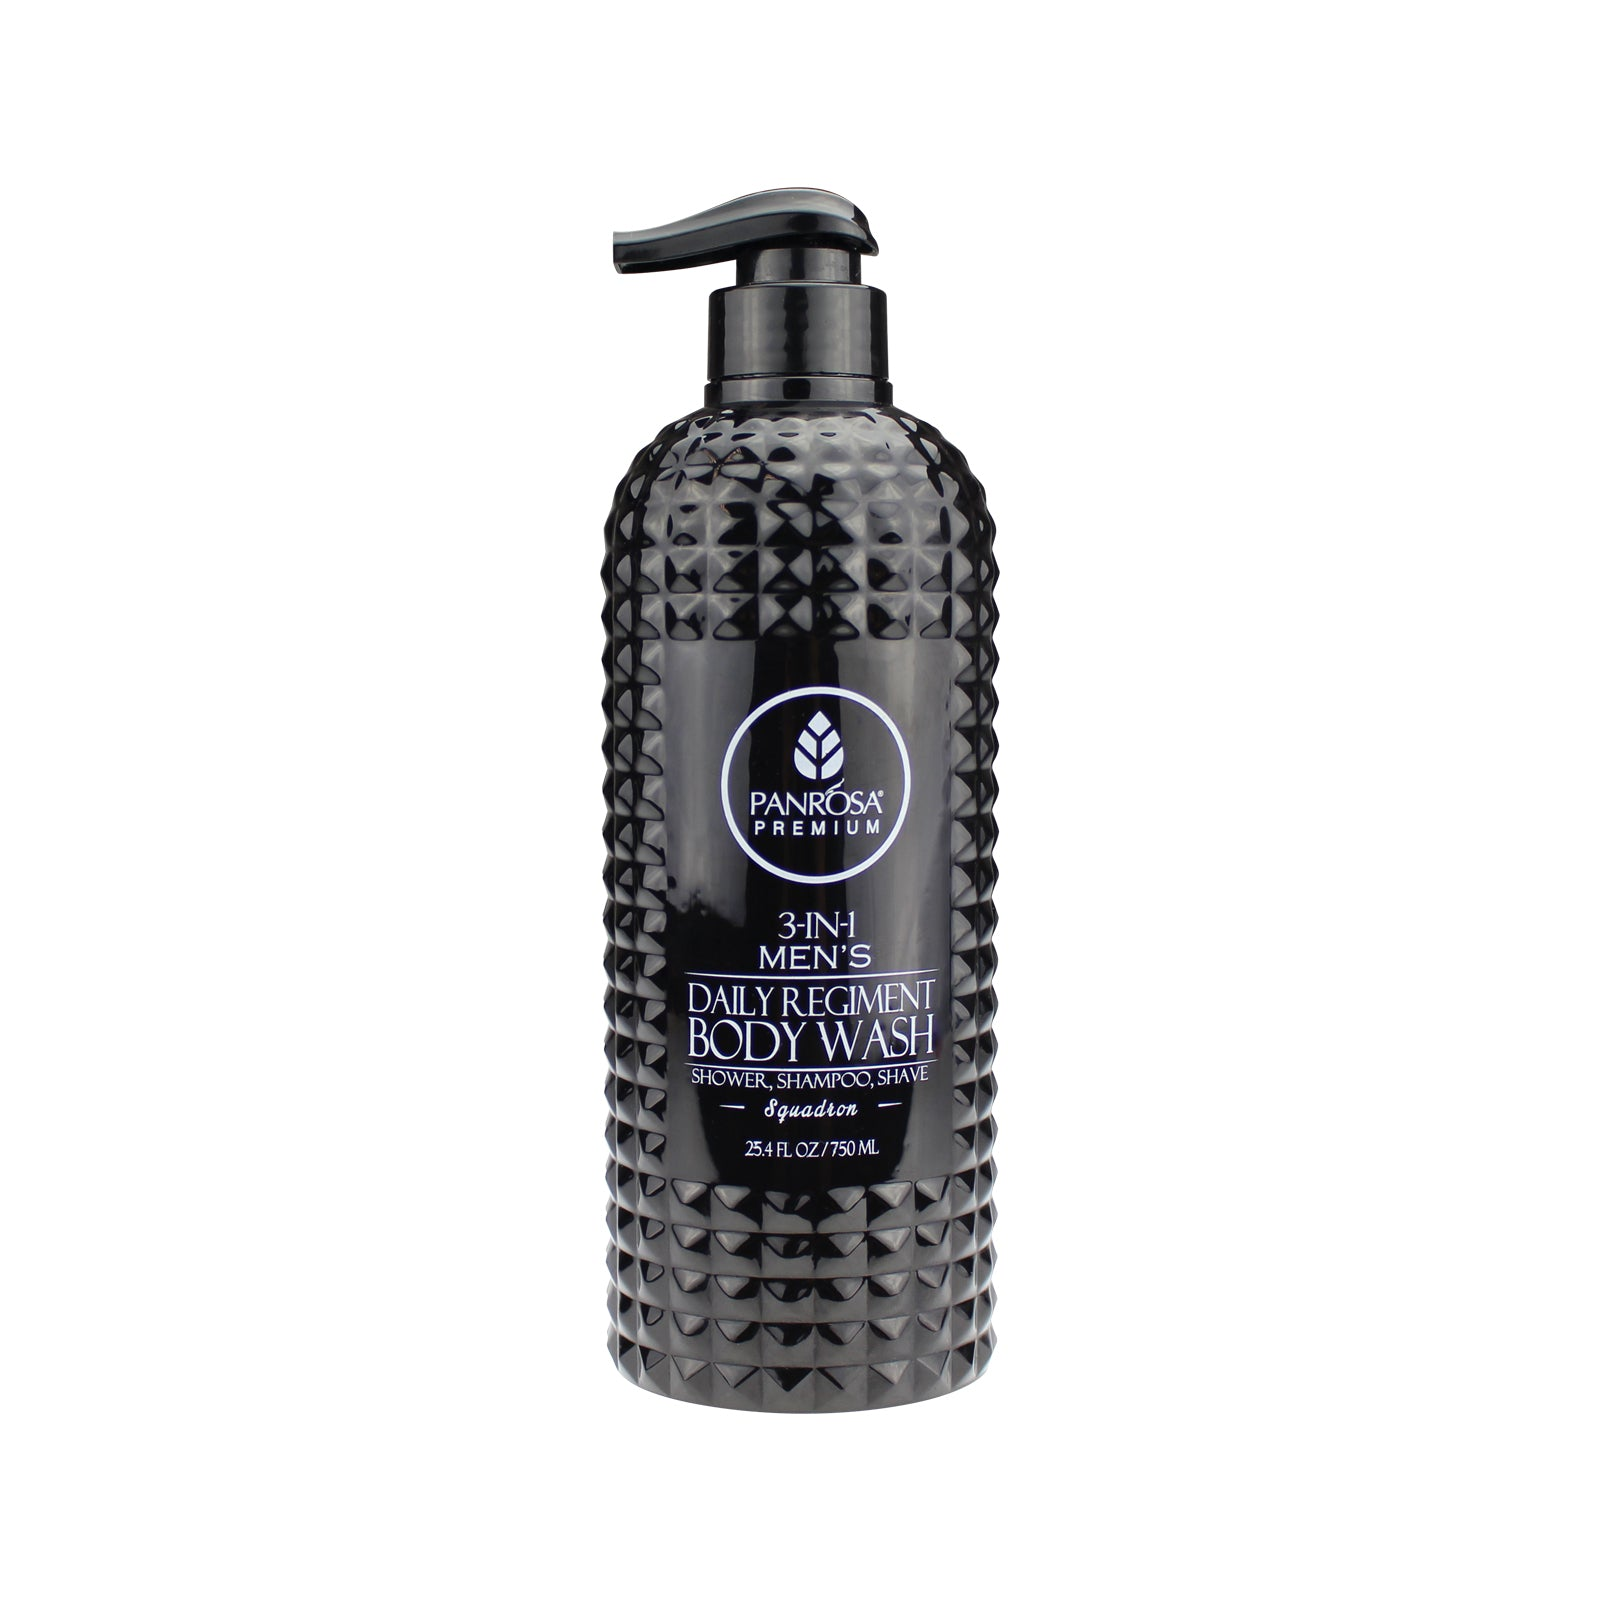 ae3ec10beef6 3-in-1 Men s Daily Regiment Body Wash - Squadron – PANROSA PREMIER